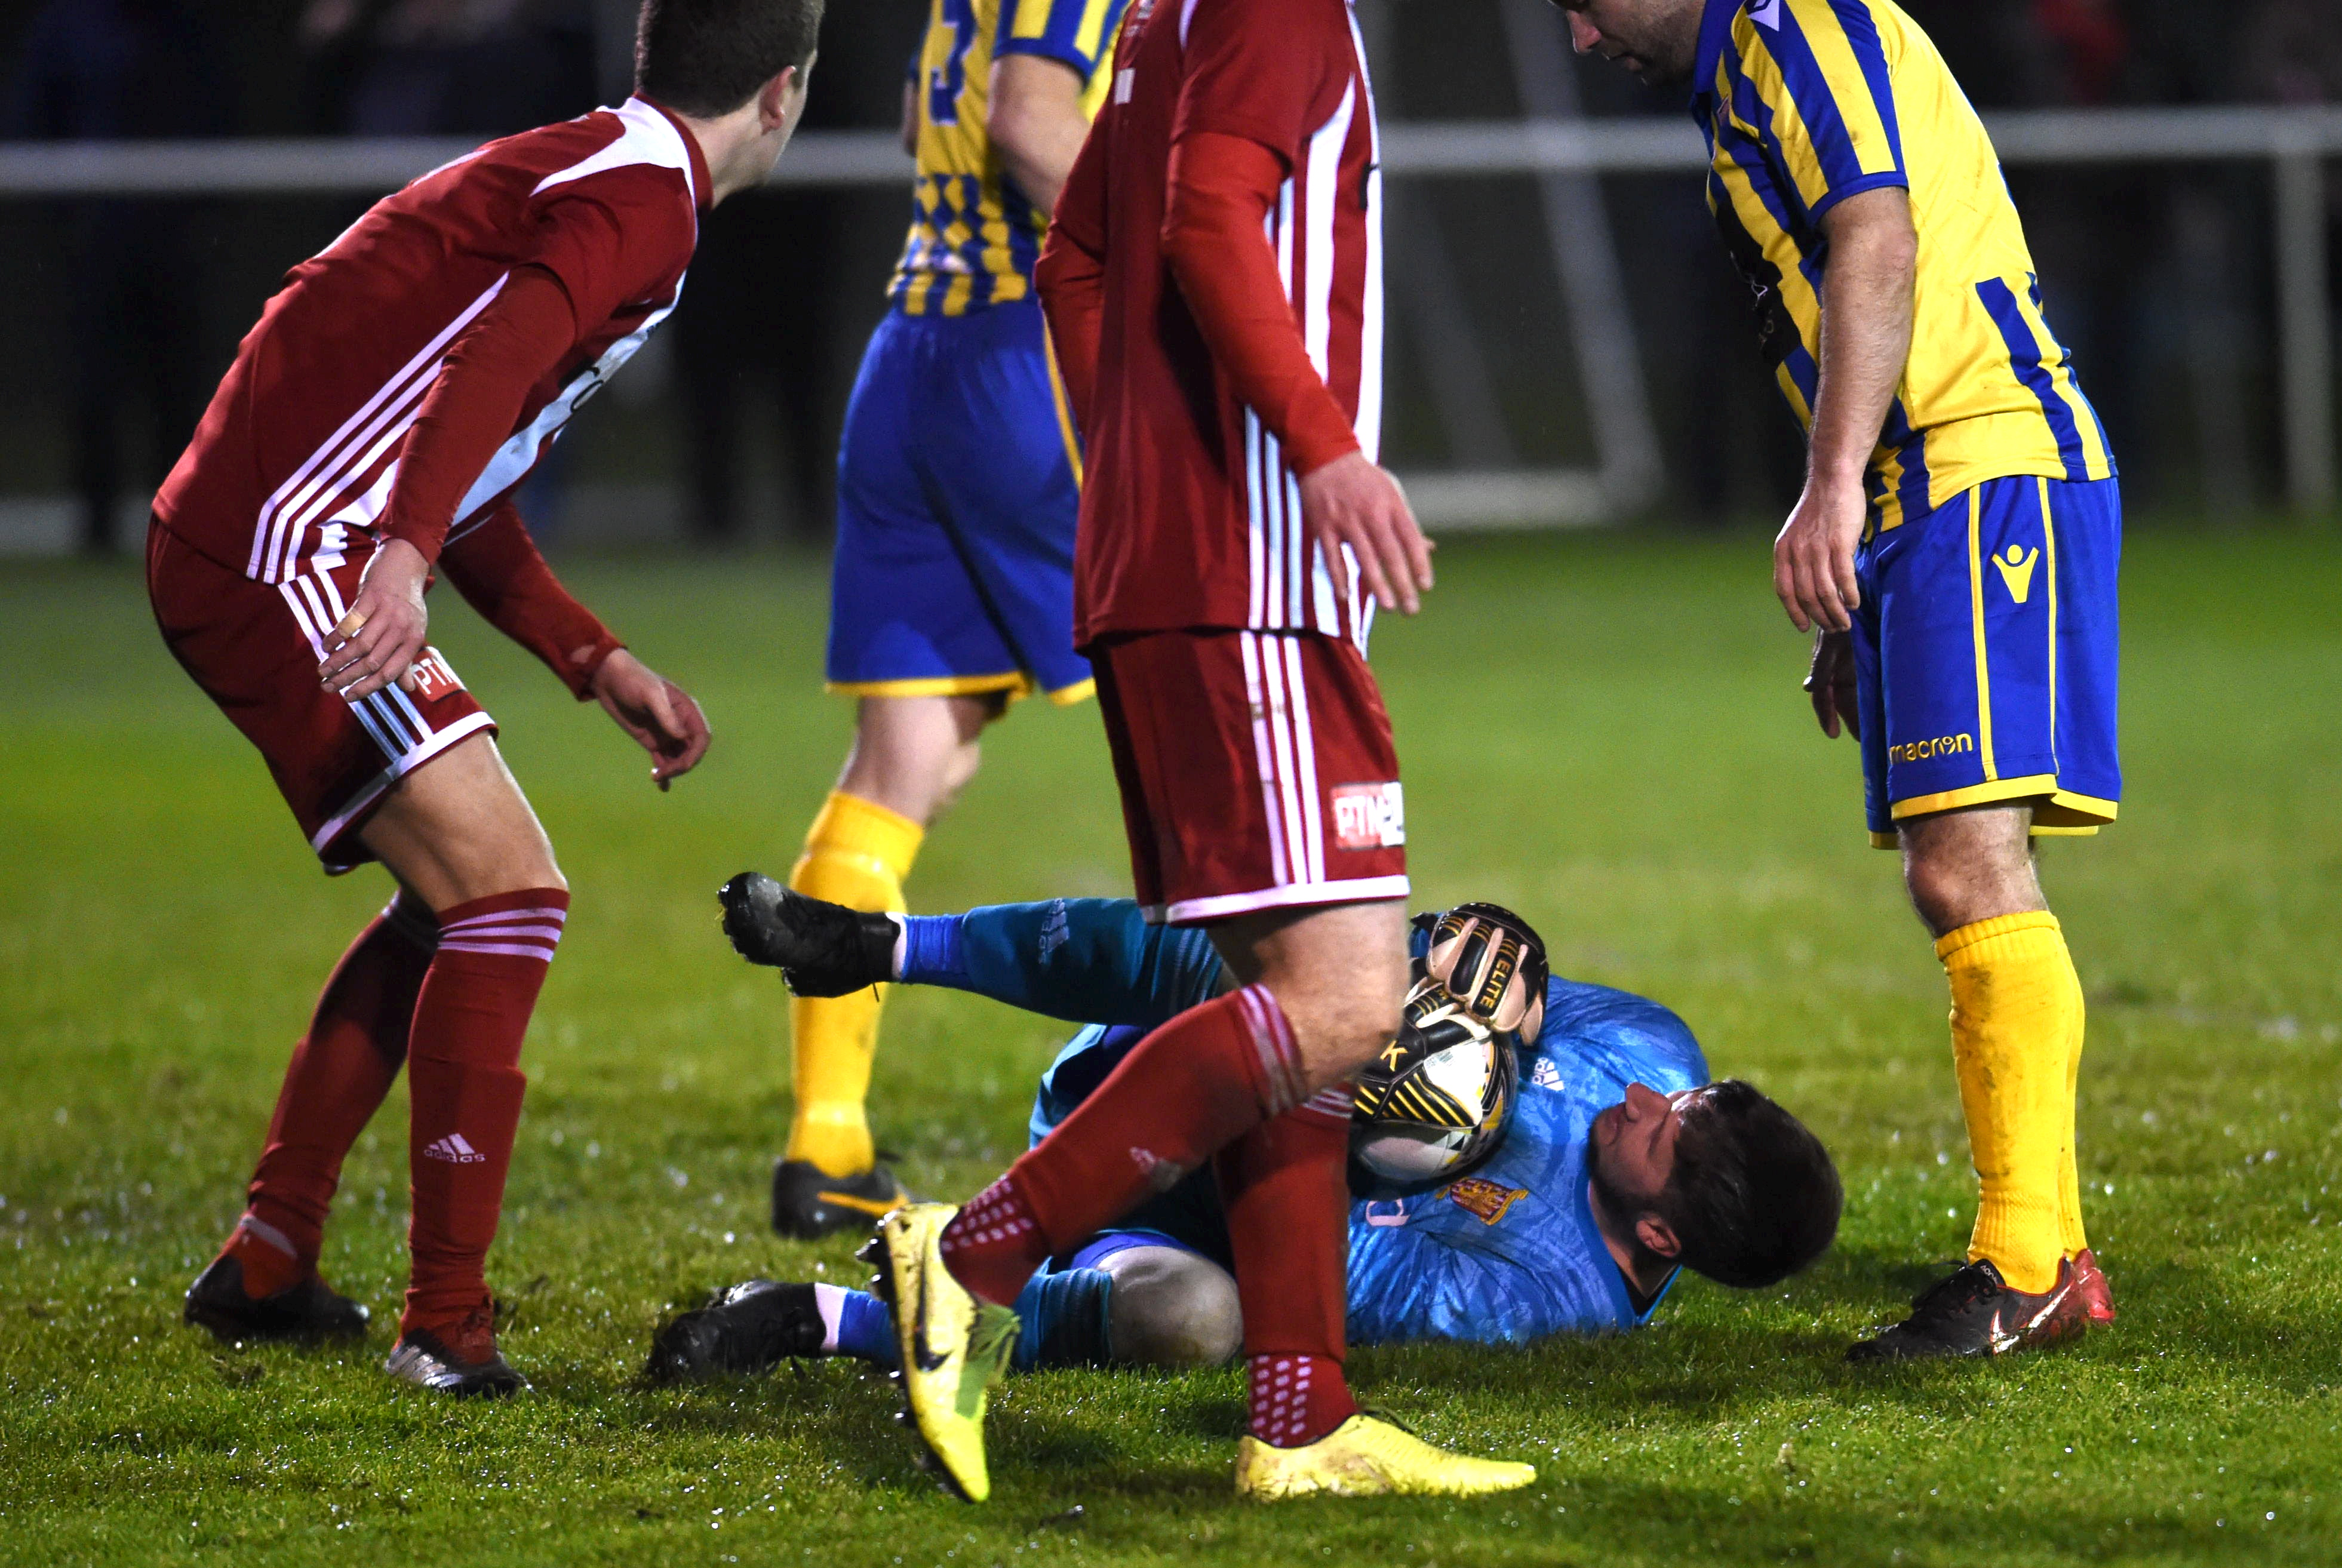 Kevin Main makes a save for Formartine. Picture by Paul Glendell